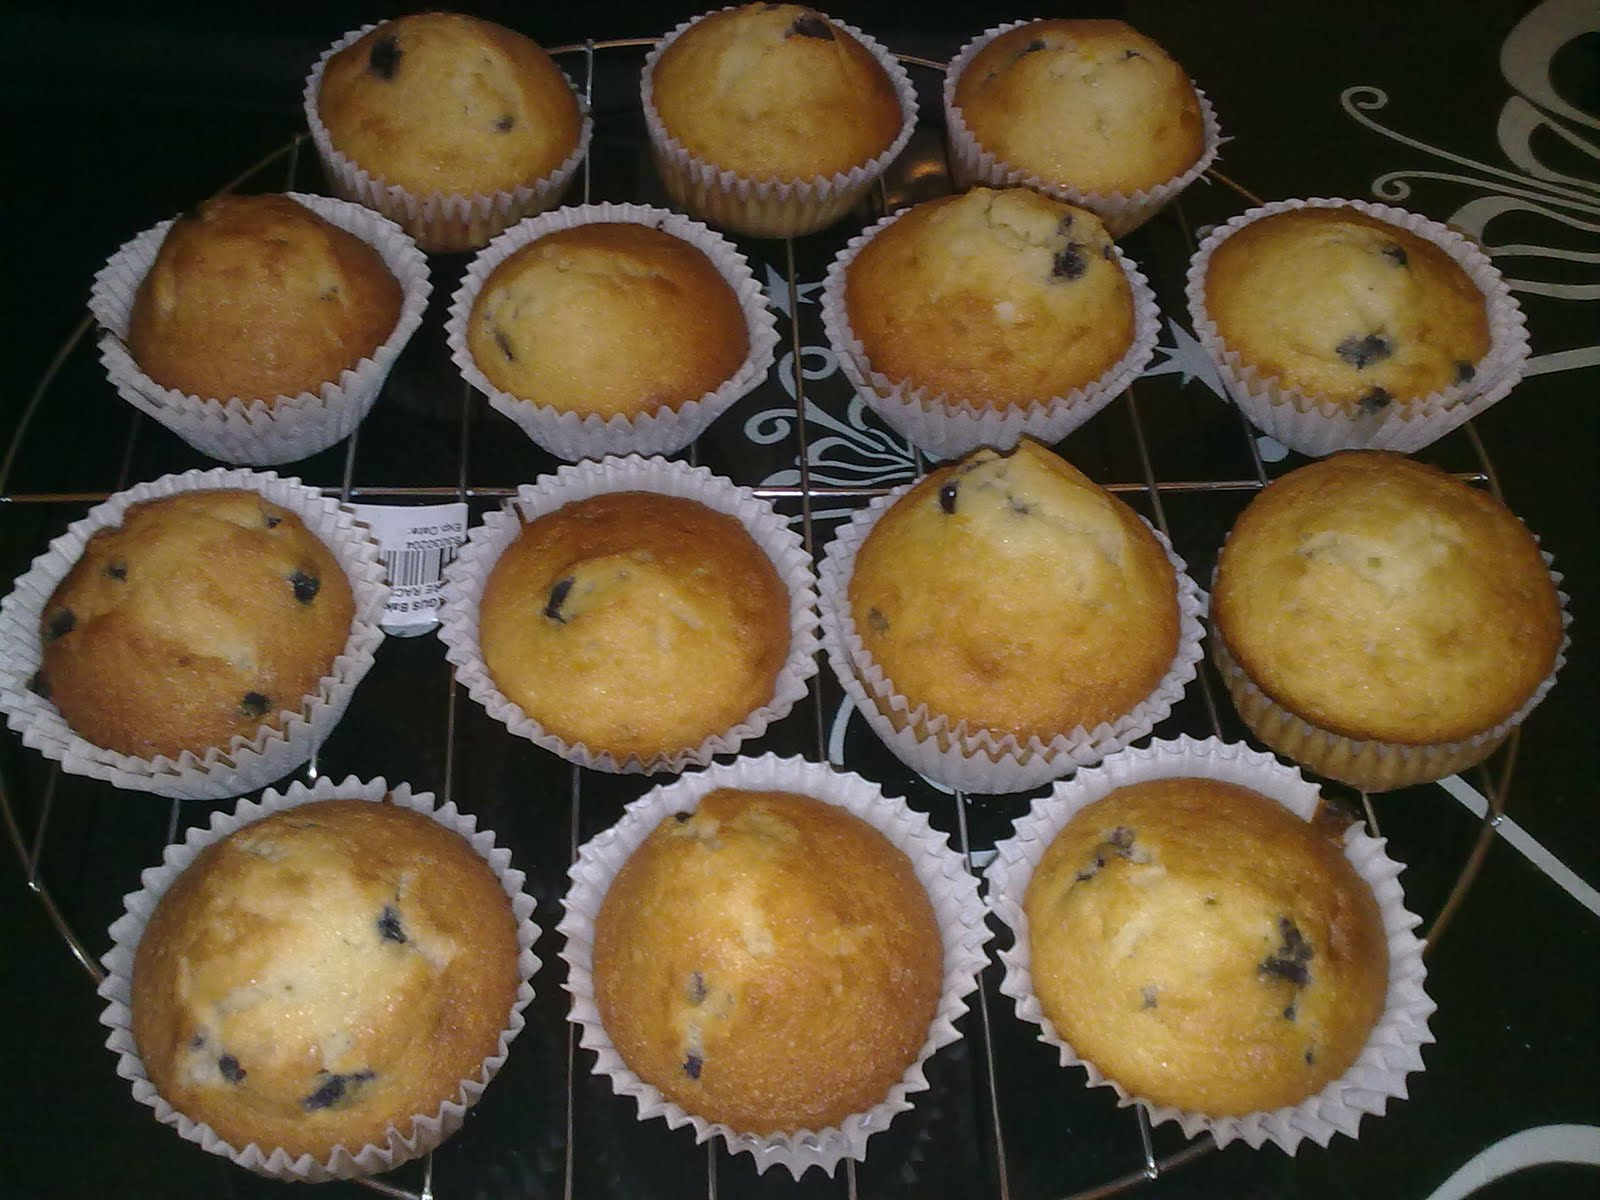 Muffins (BB, Vanilla, Kiwi, Chocolate, Pineapple)